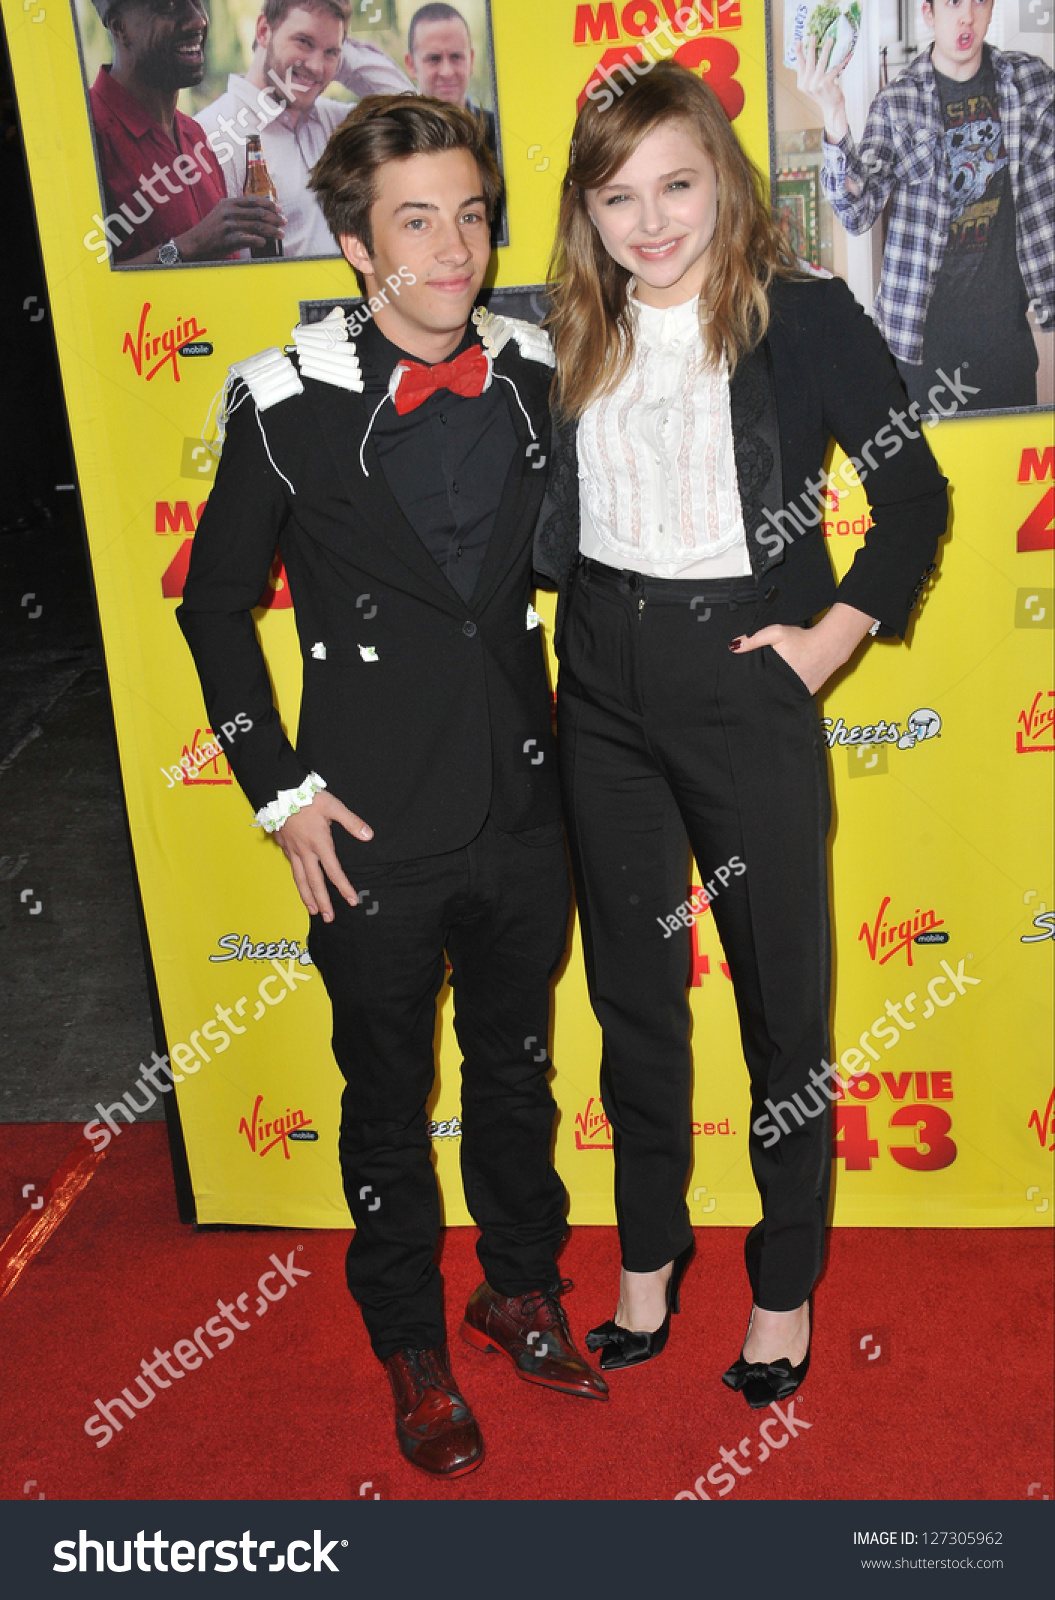 Chloe Moretz & Ashley Tisdale: 'Movie 43' Premiere!: Photo ... |Chloe Grace Moretz And Jimmy Bennett